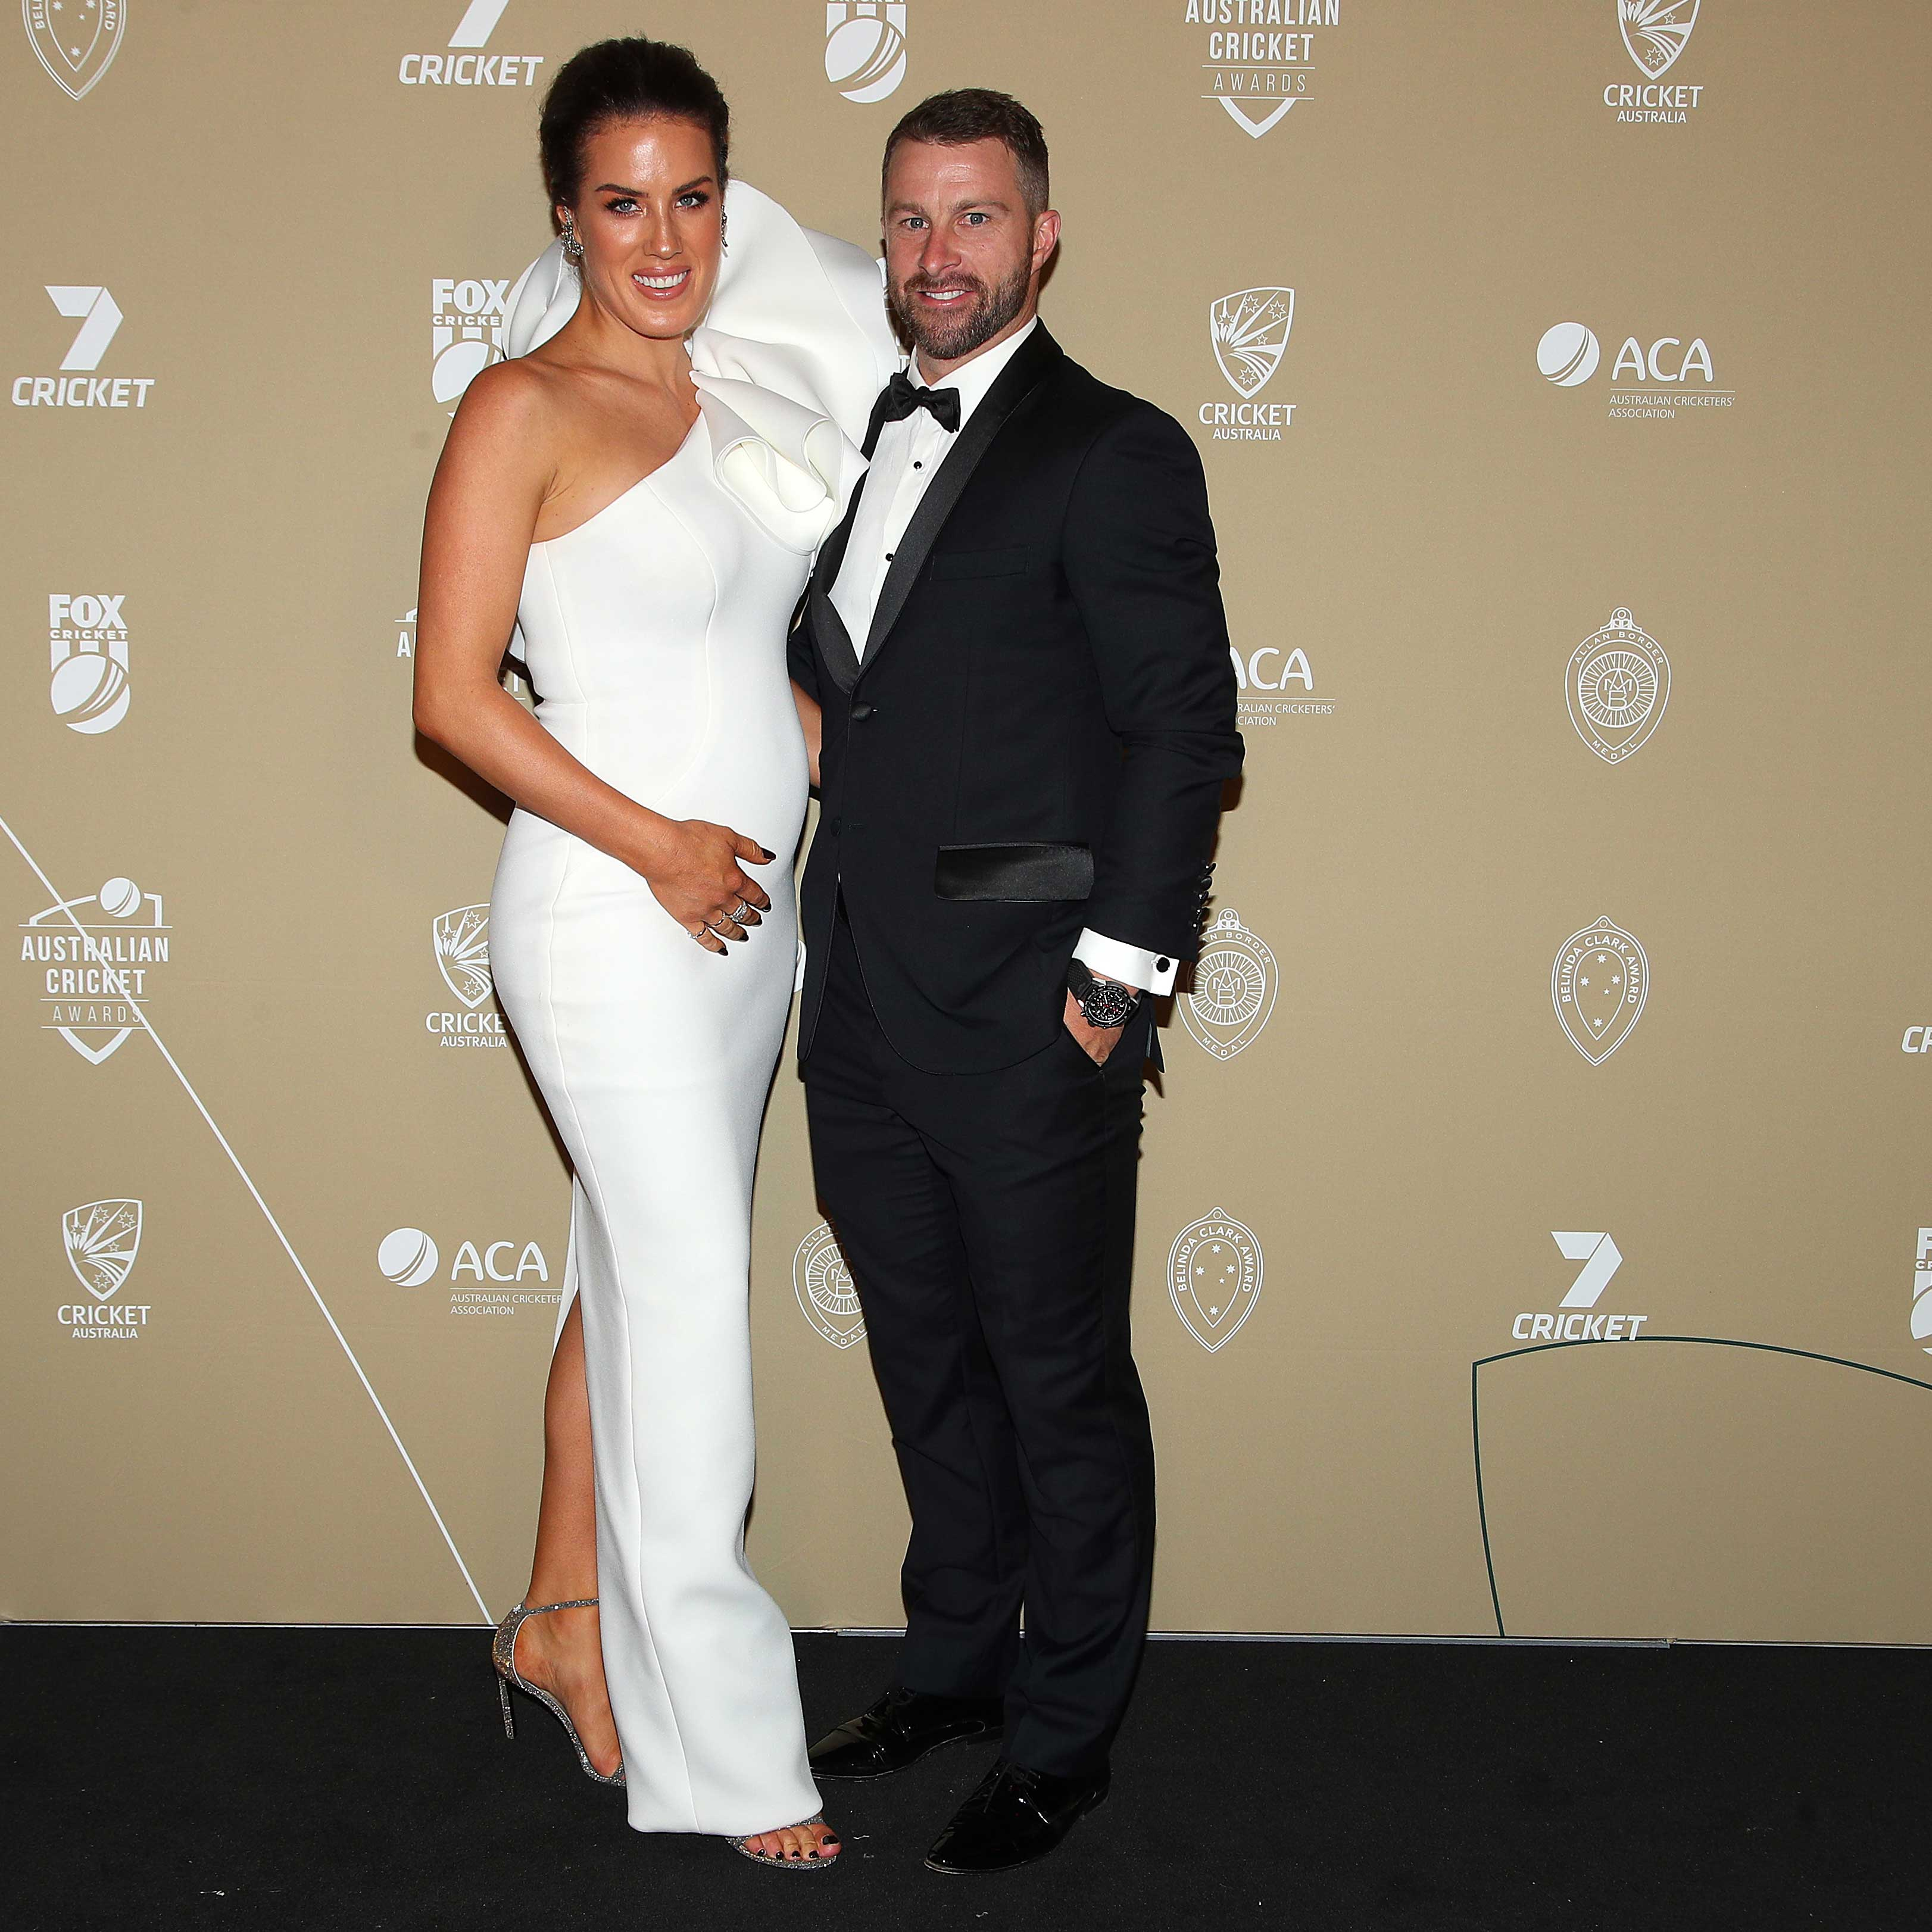 Matthew Wade and Julia Barry // Getty